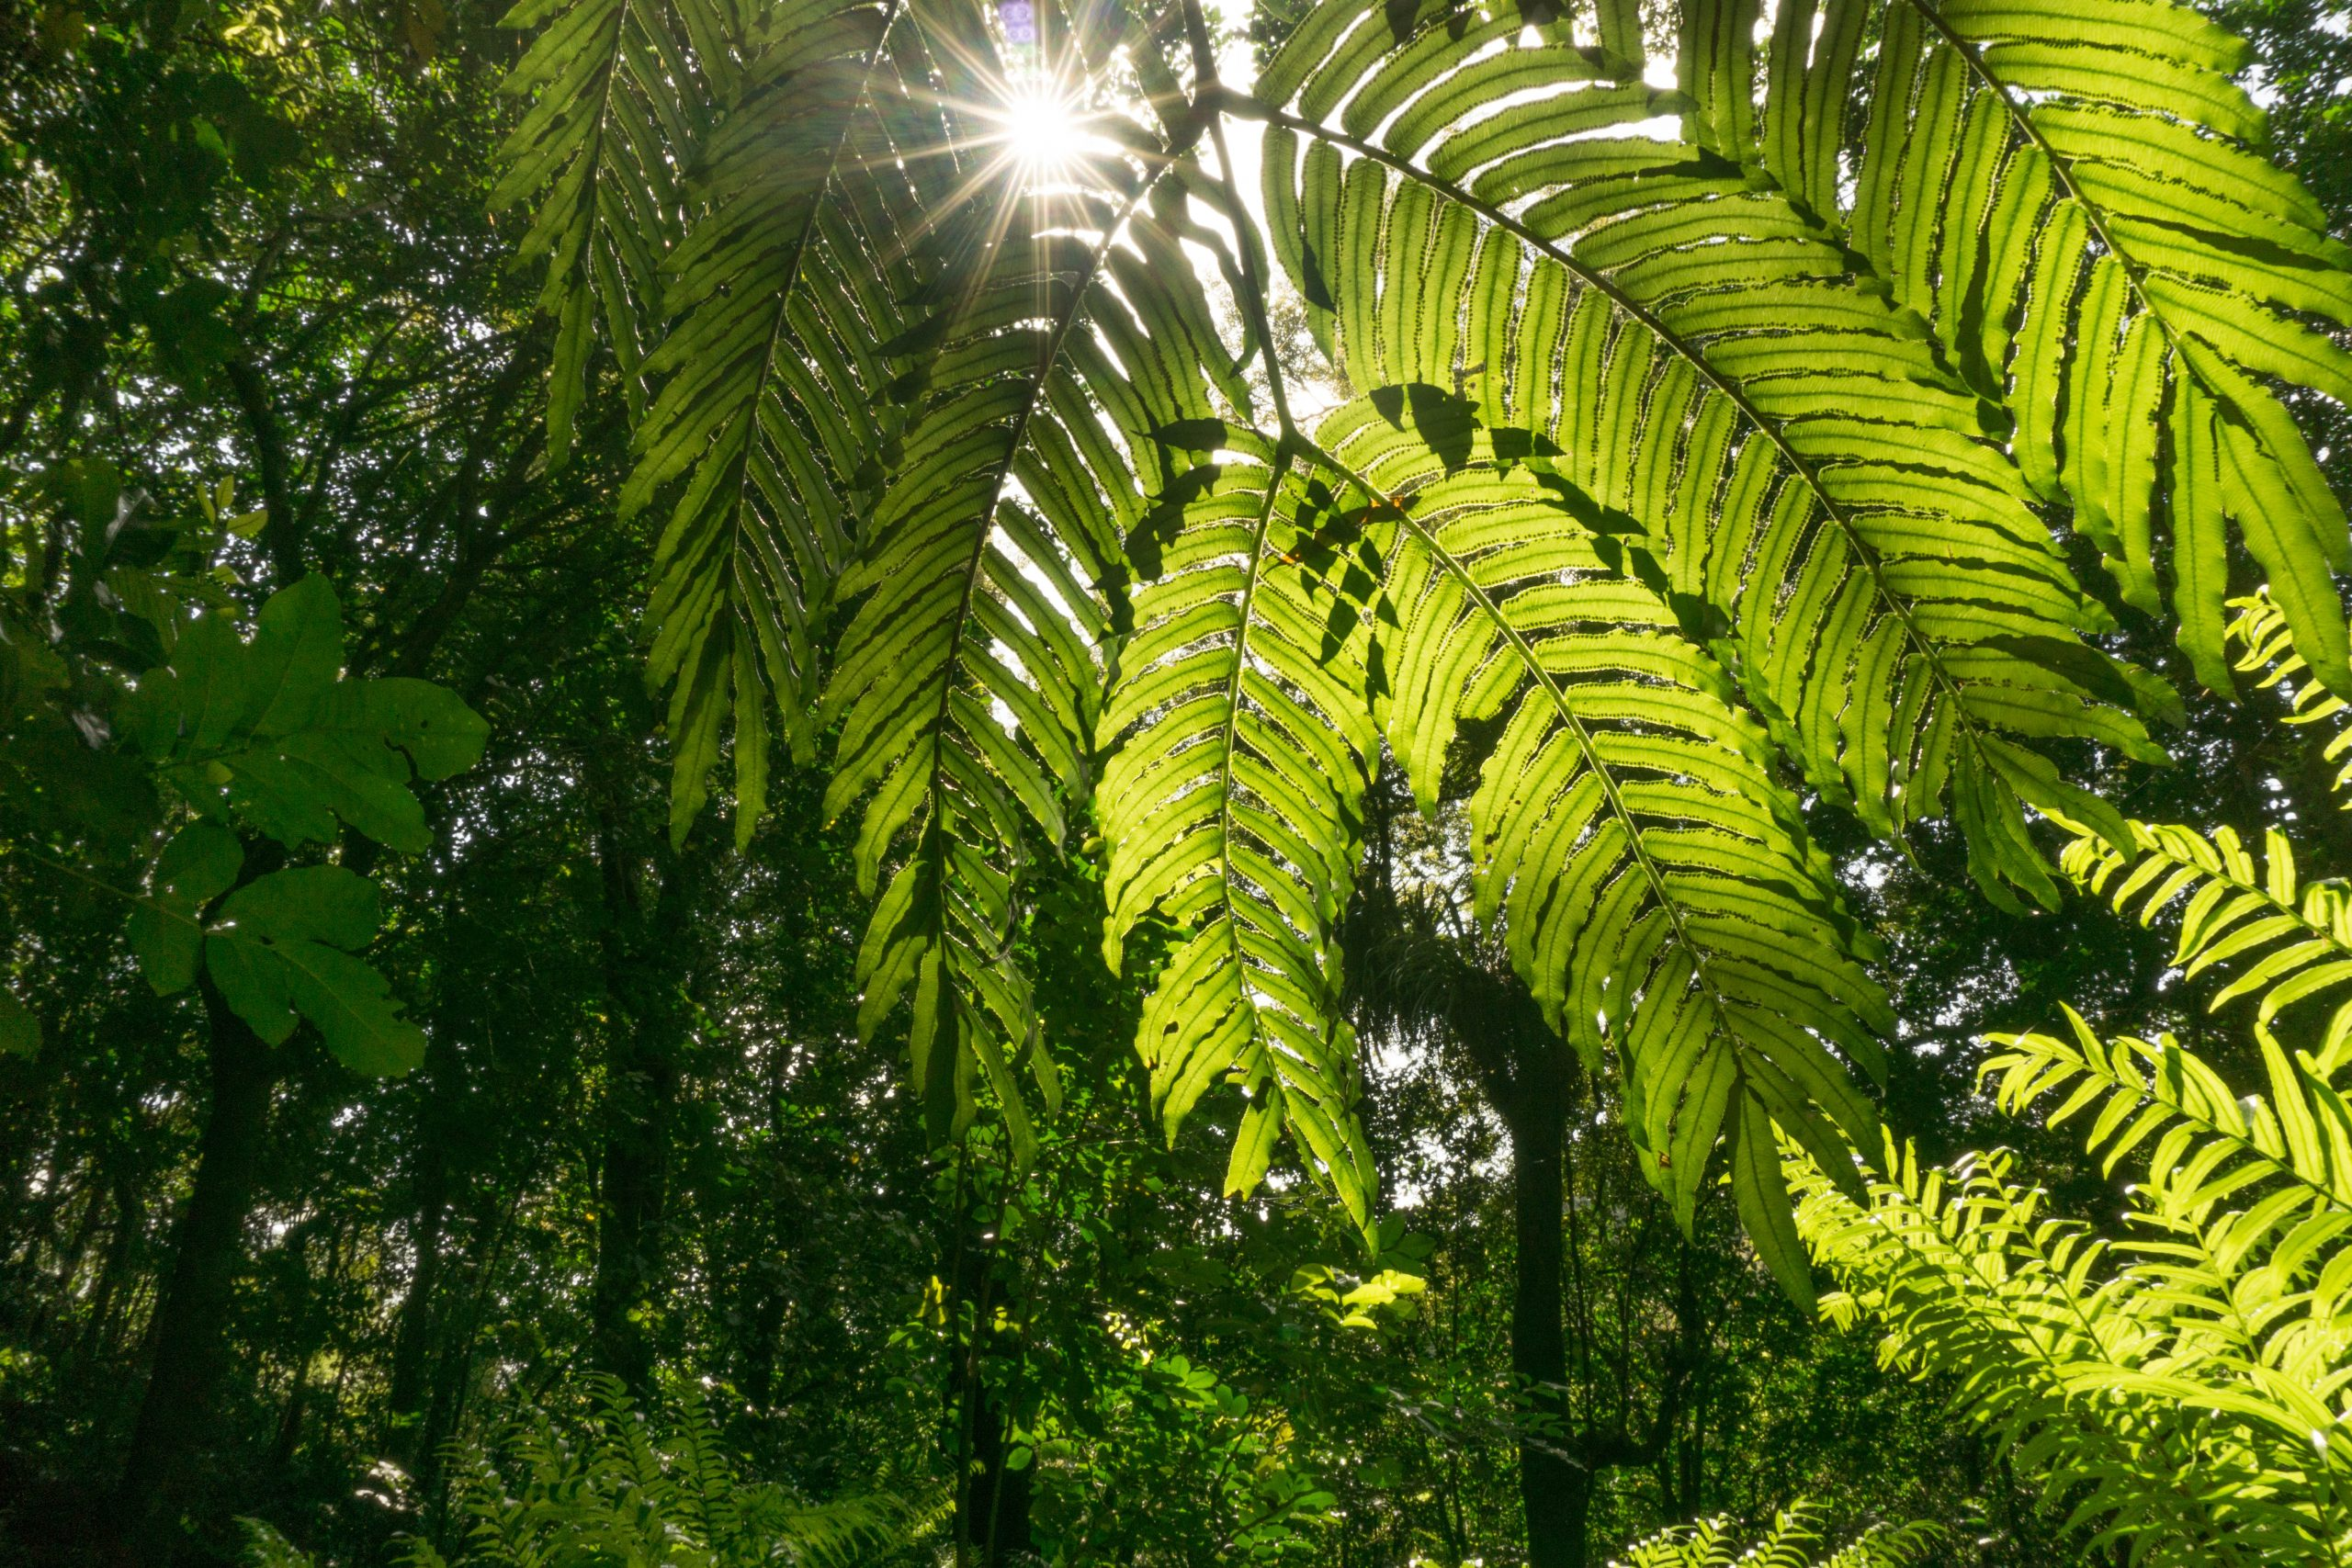 Sunstar in the Ferns at One Burgess Hill in New Plymouth